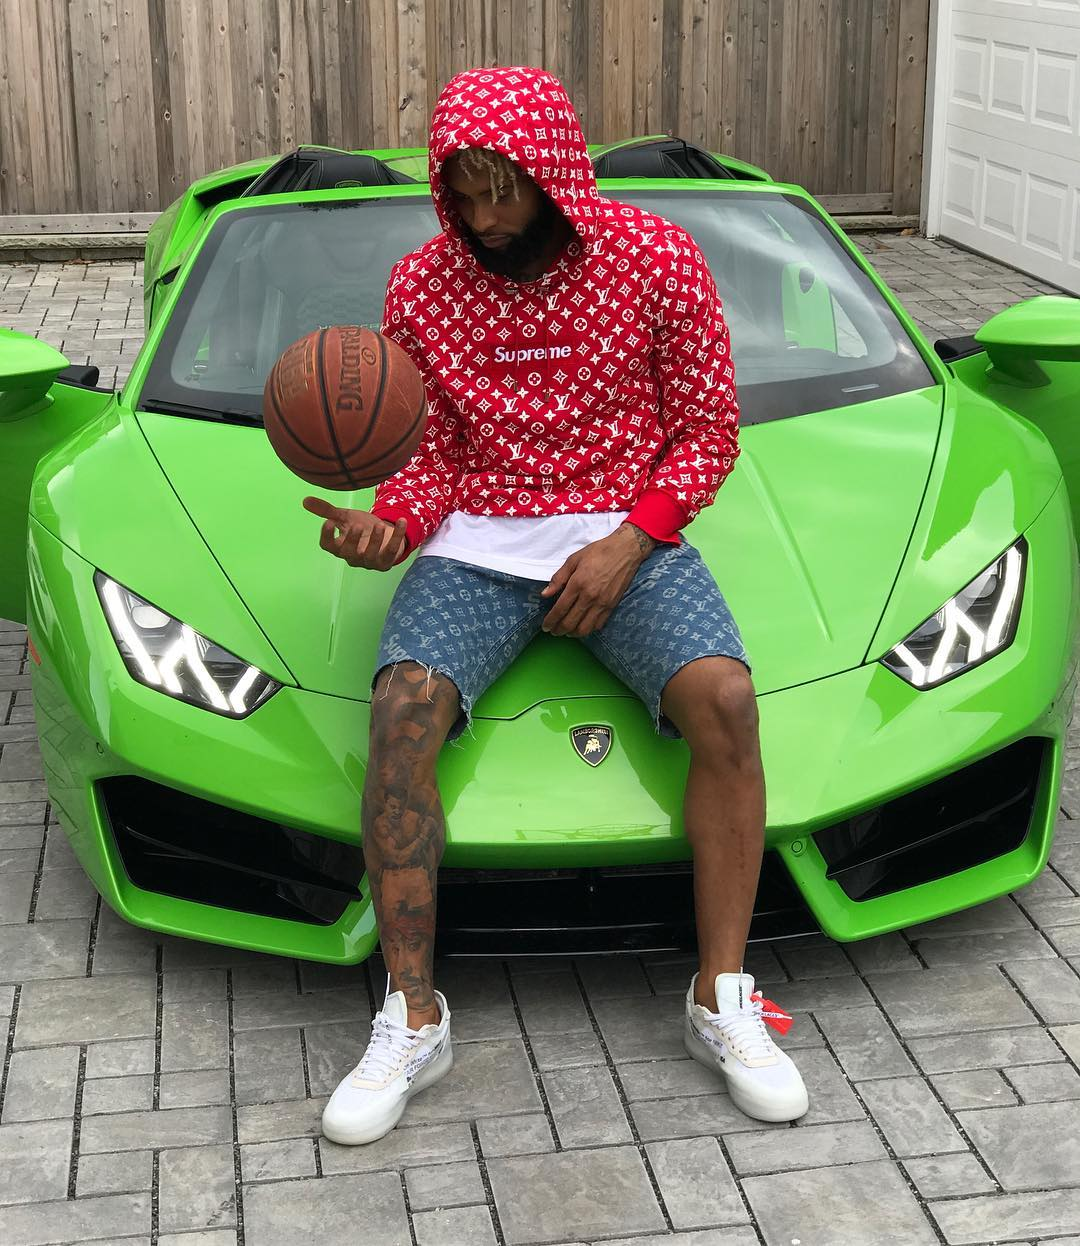 odell-beckham-jr-in-louis-vuitton-x-supreme-on-lamborghini